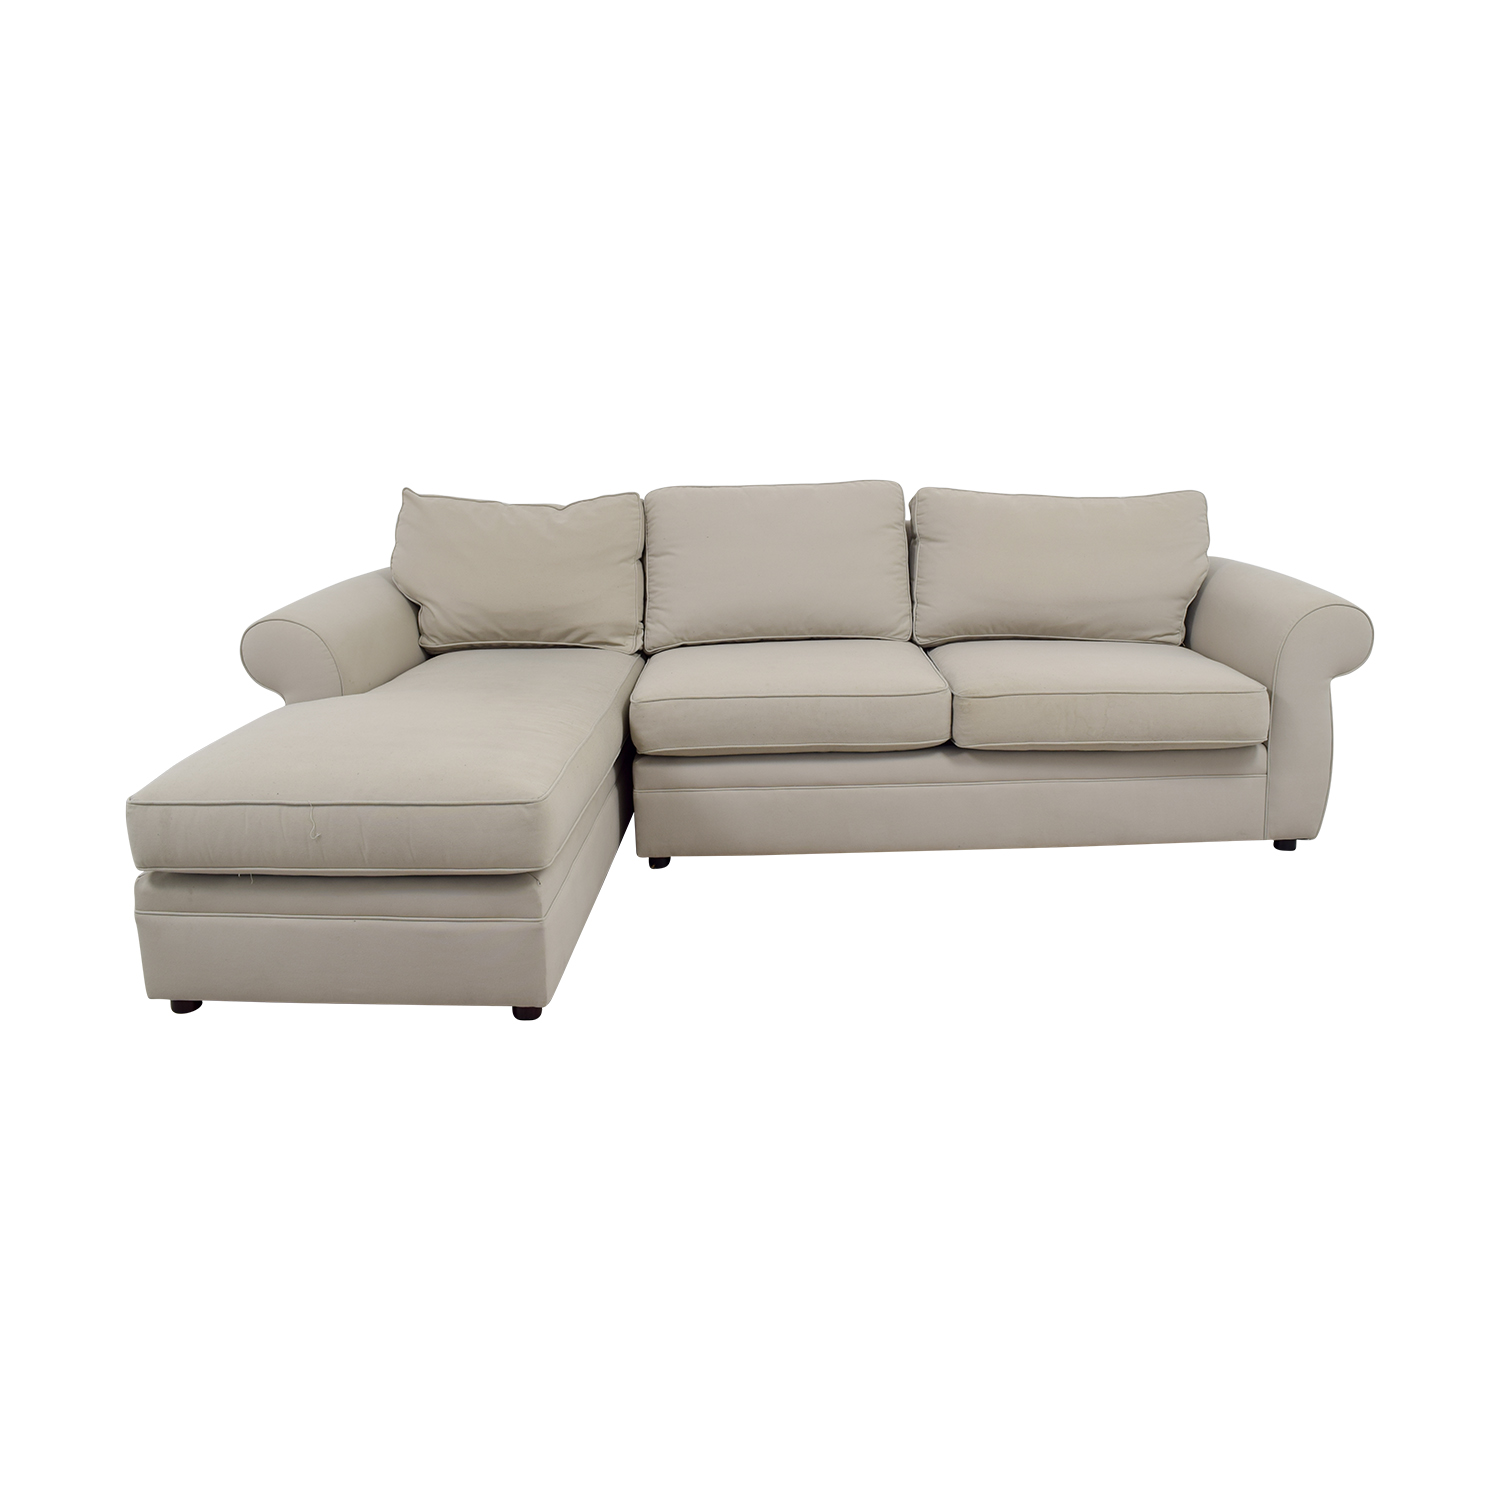 90 off pottery barn pottery barn townsend cream upholstered chaise sectional sofas